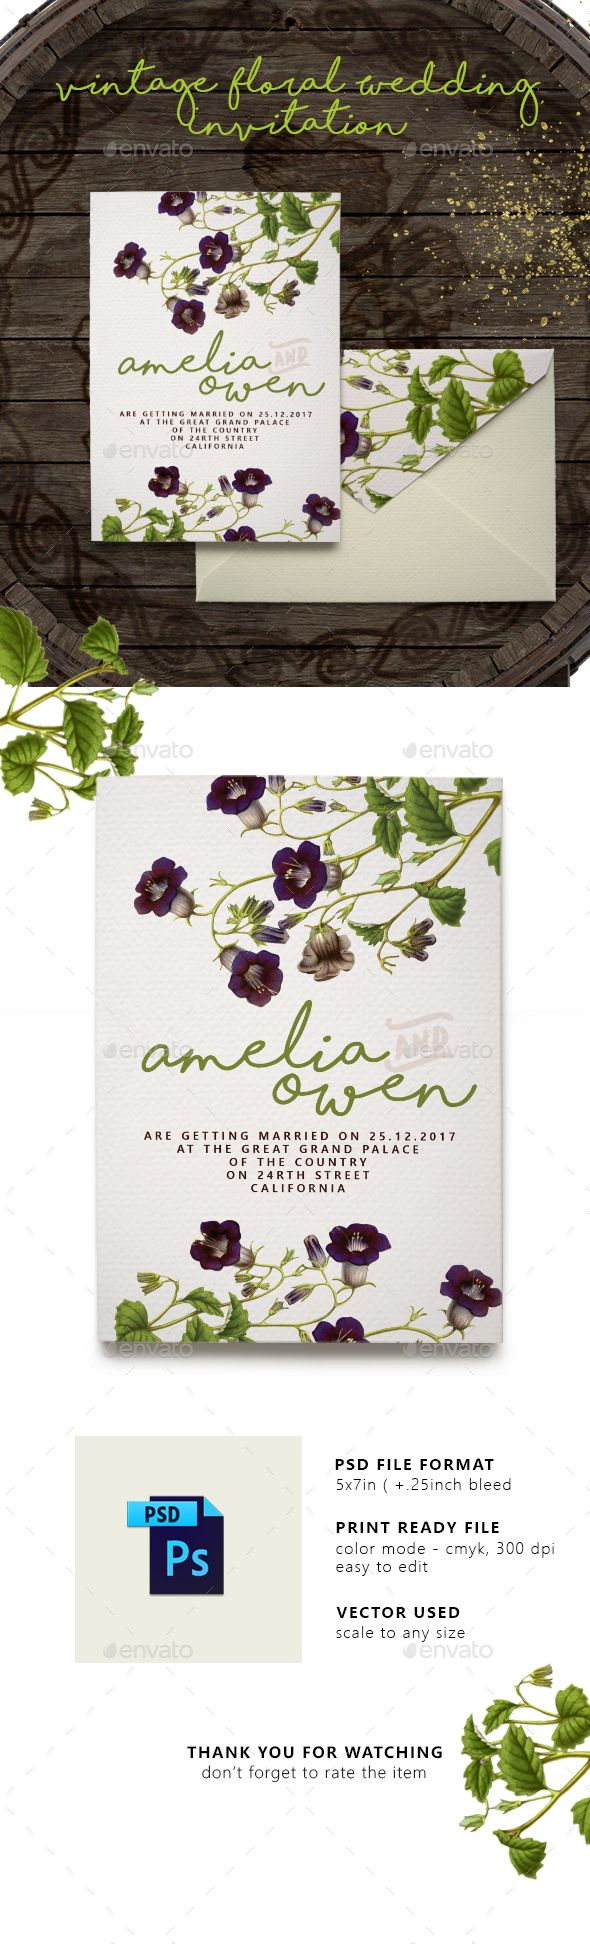 Vintage Floral Wedding Invitation - #Weddings #Cards & Invites Download here: https://graphicriver.net/item/vintage-floral-wedding-invitation/19971484?ref=alena994